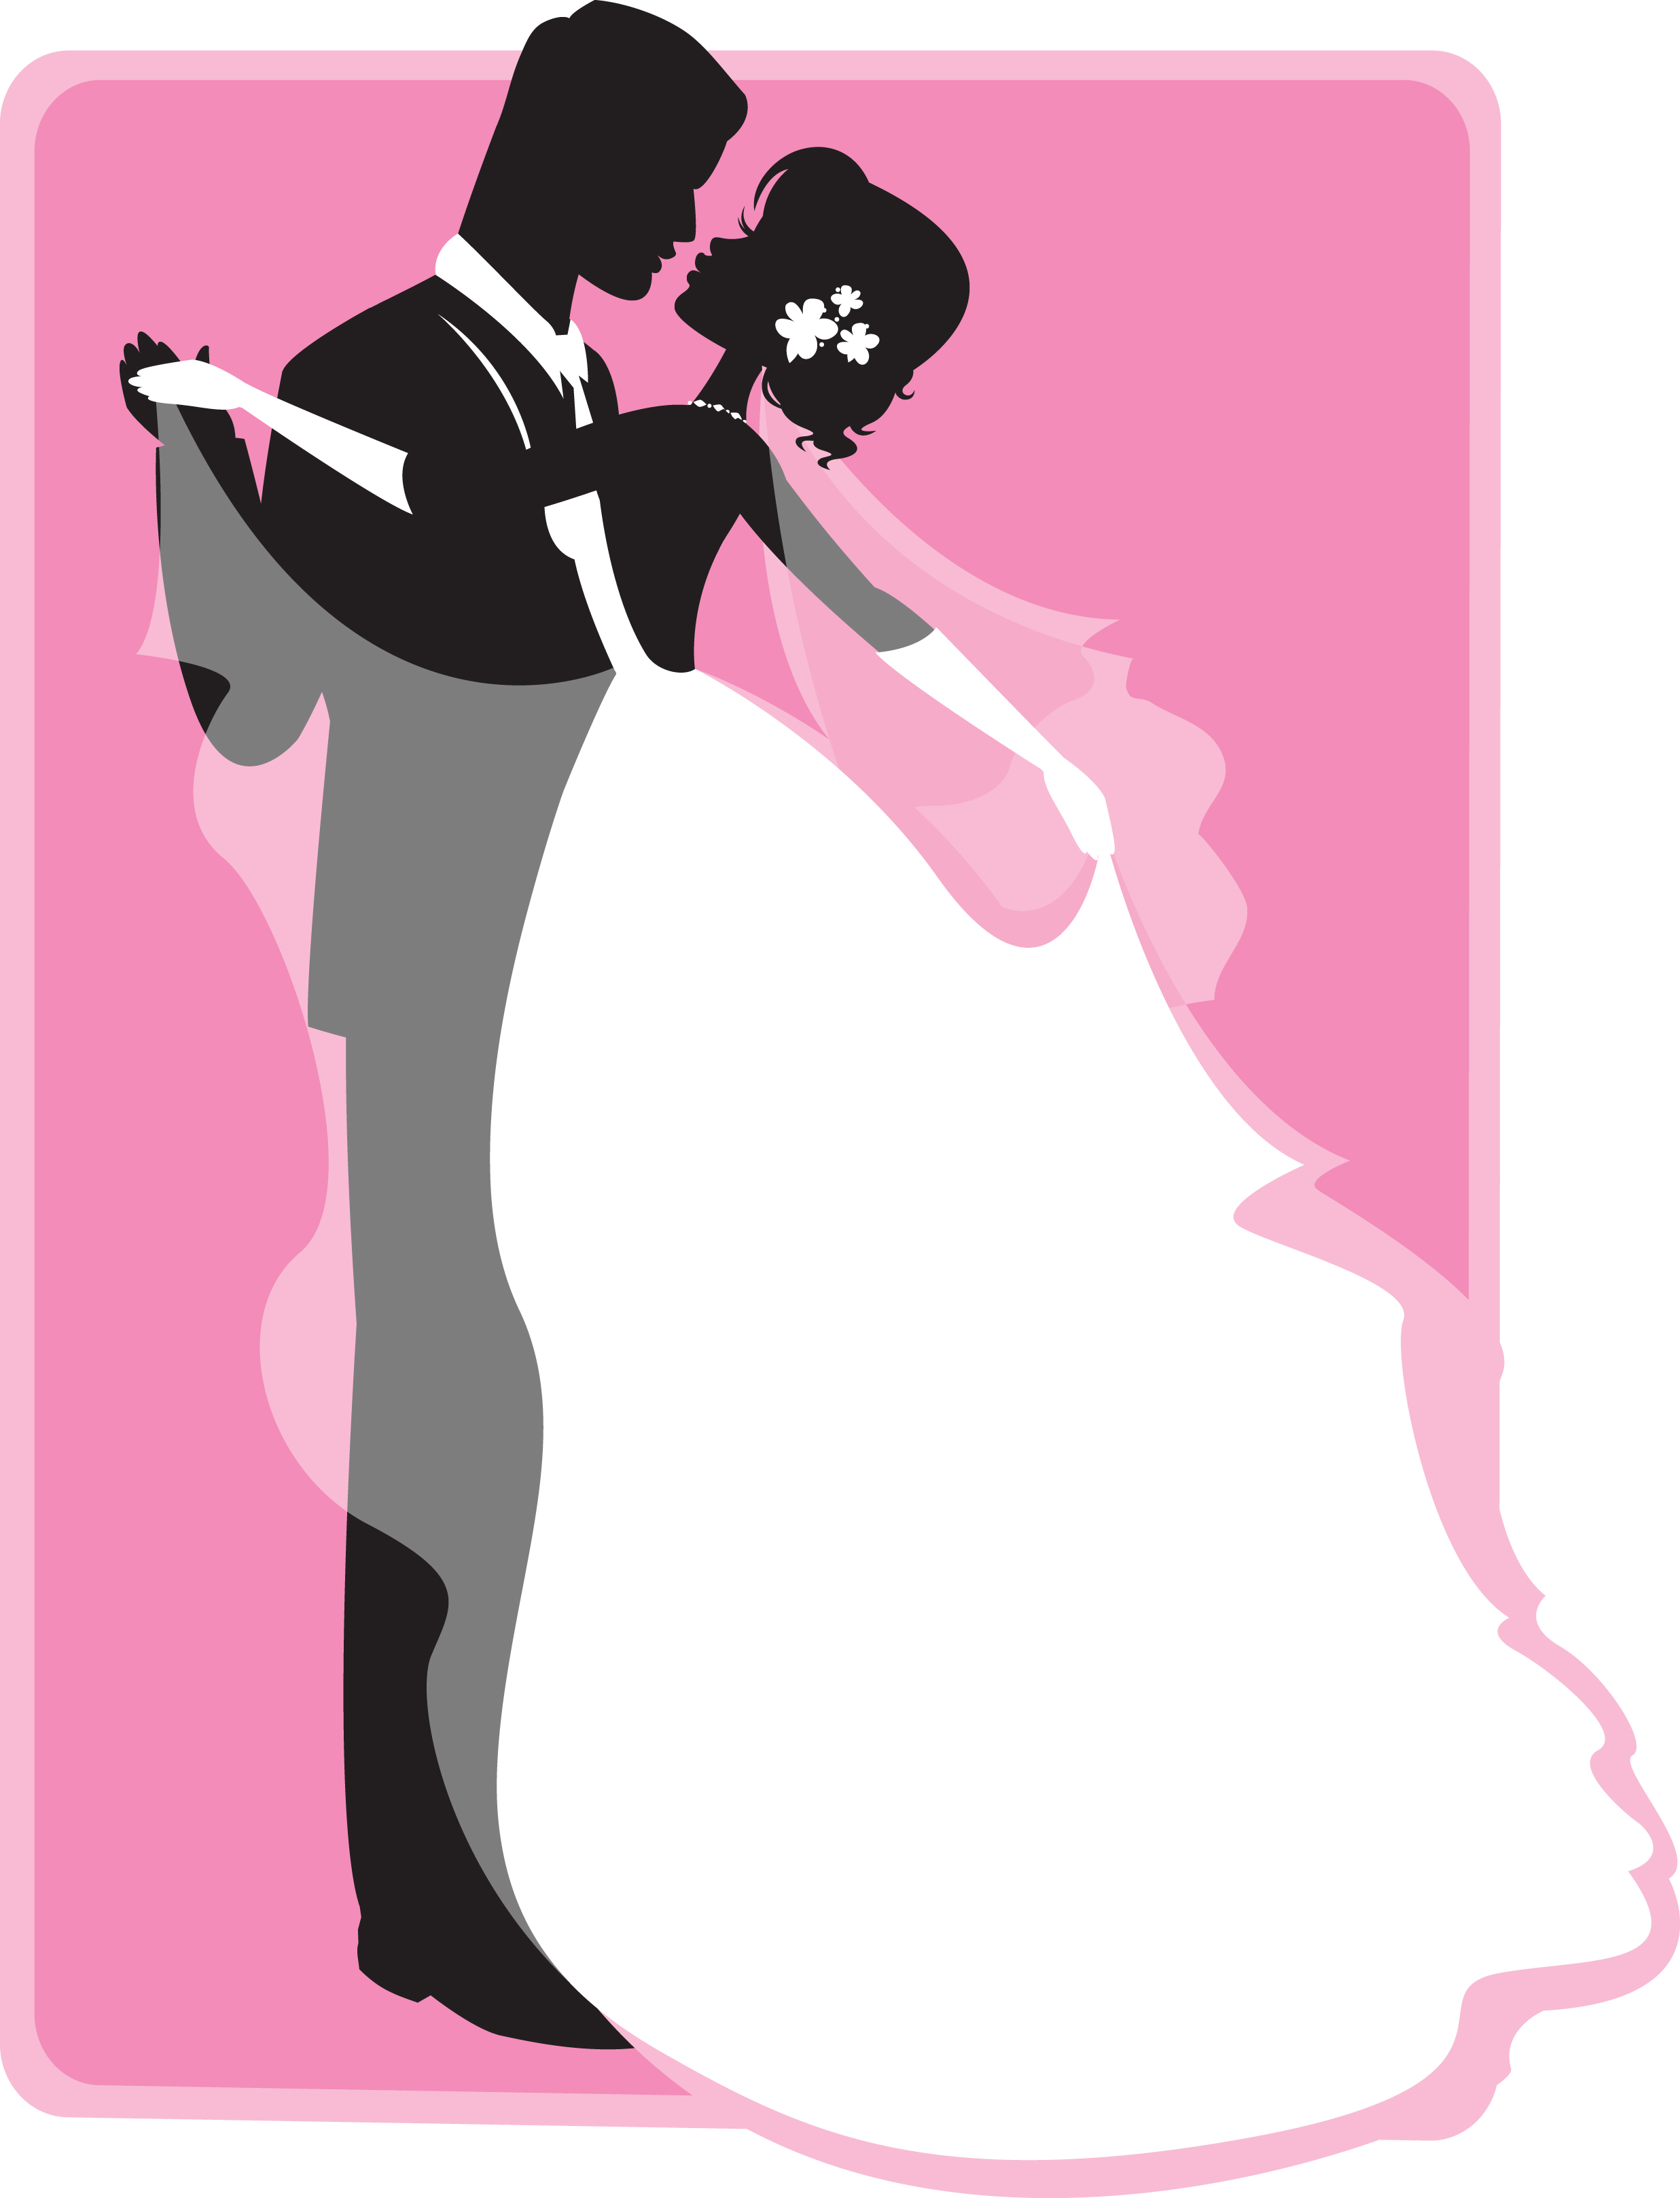 The Perfect Dance For Your Happiest Day